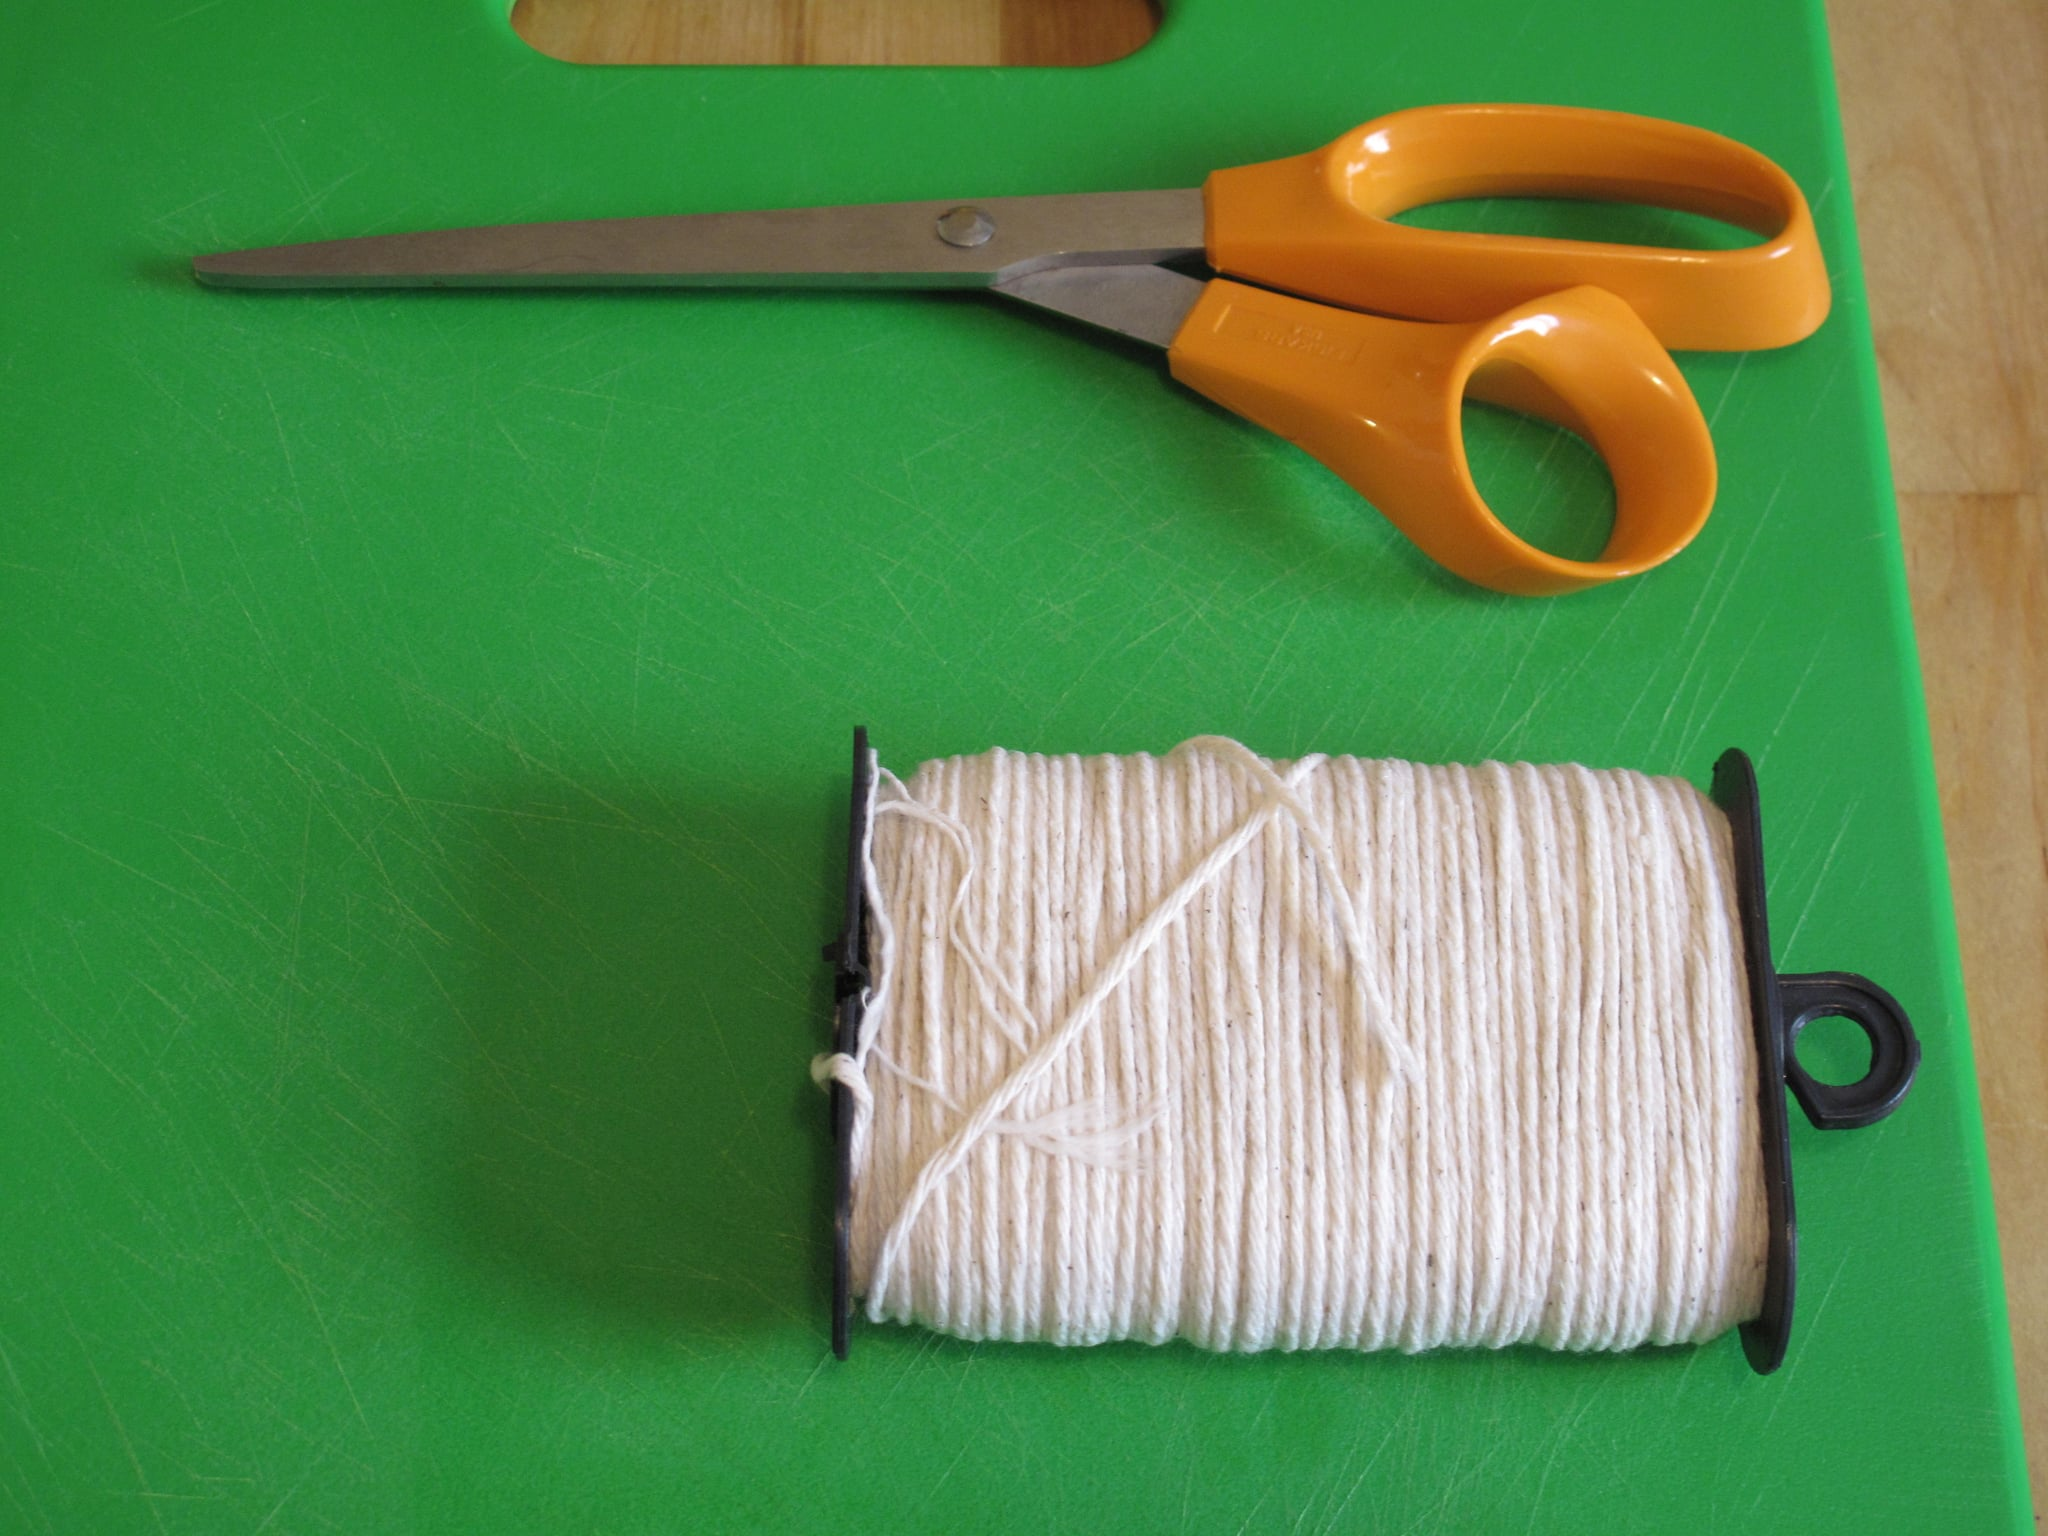 You'll need some equipment to start off with, such as kitchen twine and scissors.